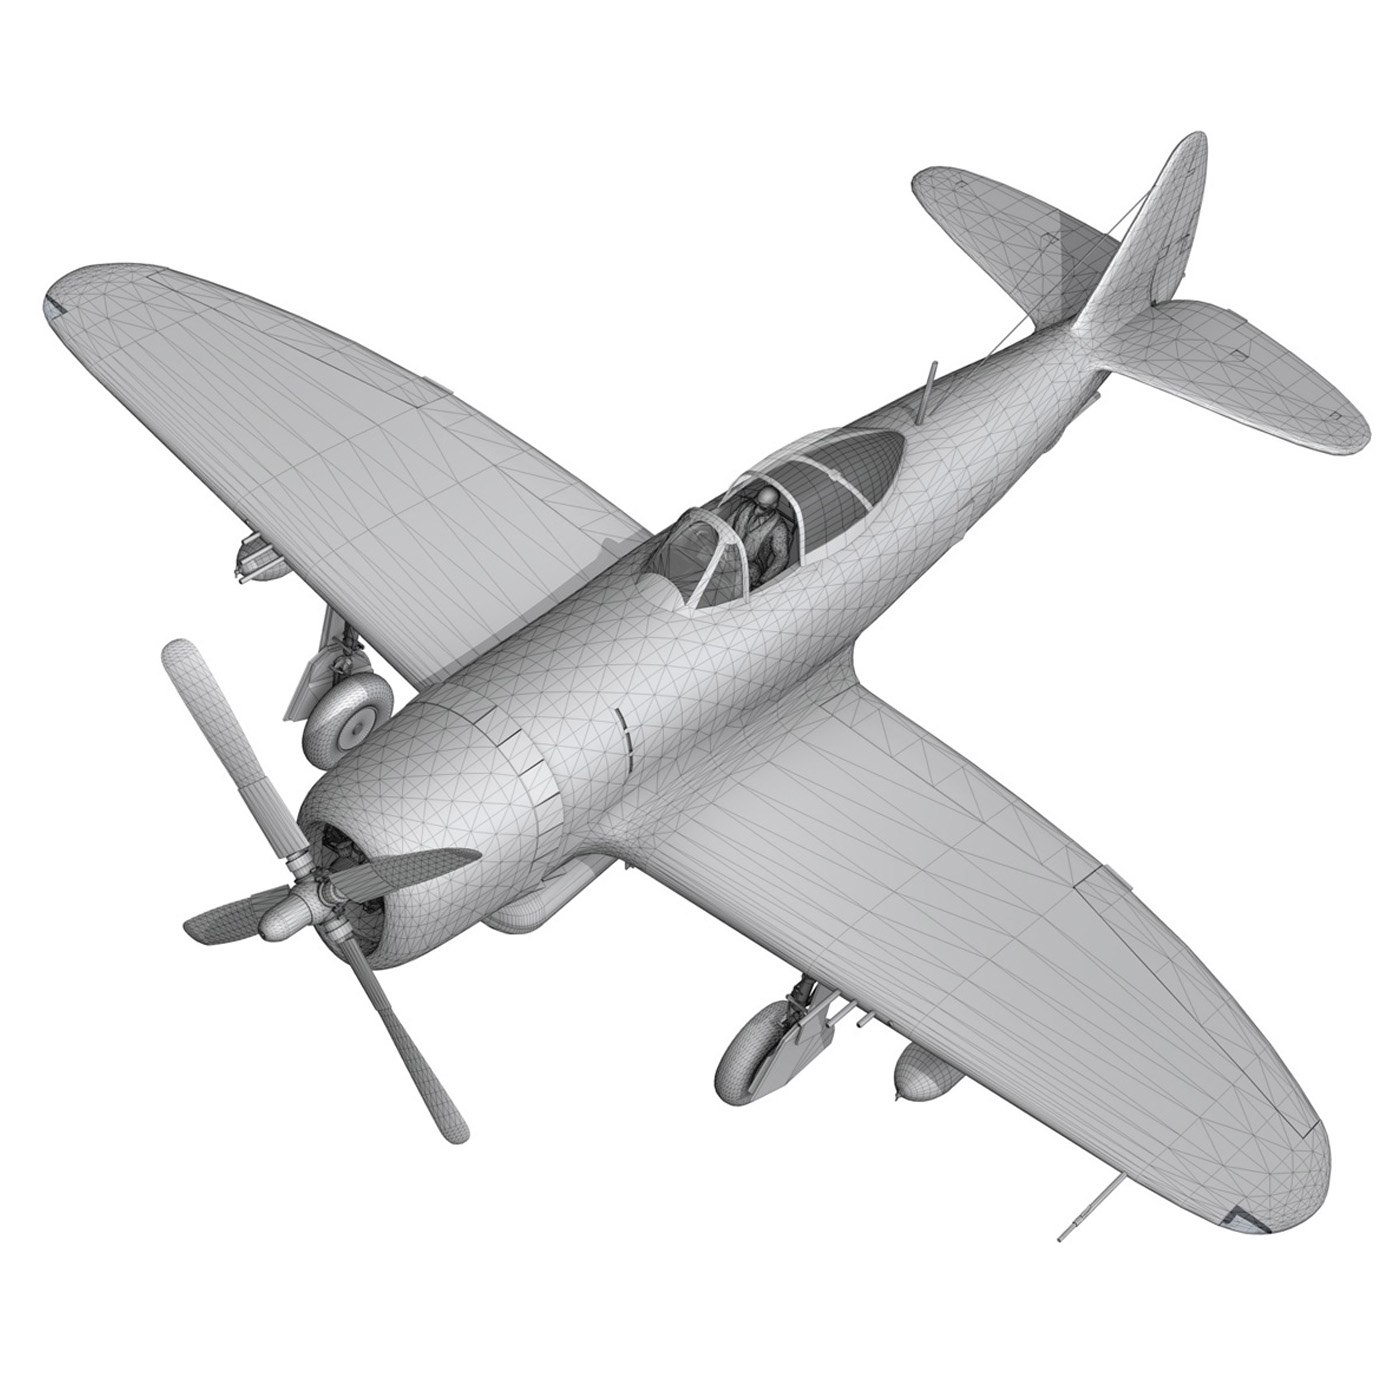 republic p-47 thunderbolt – ole miss lib 3d model fbx c4d lwo obj 274291